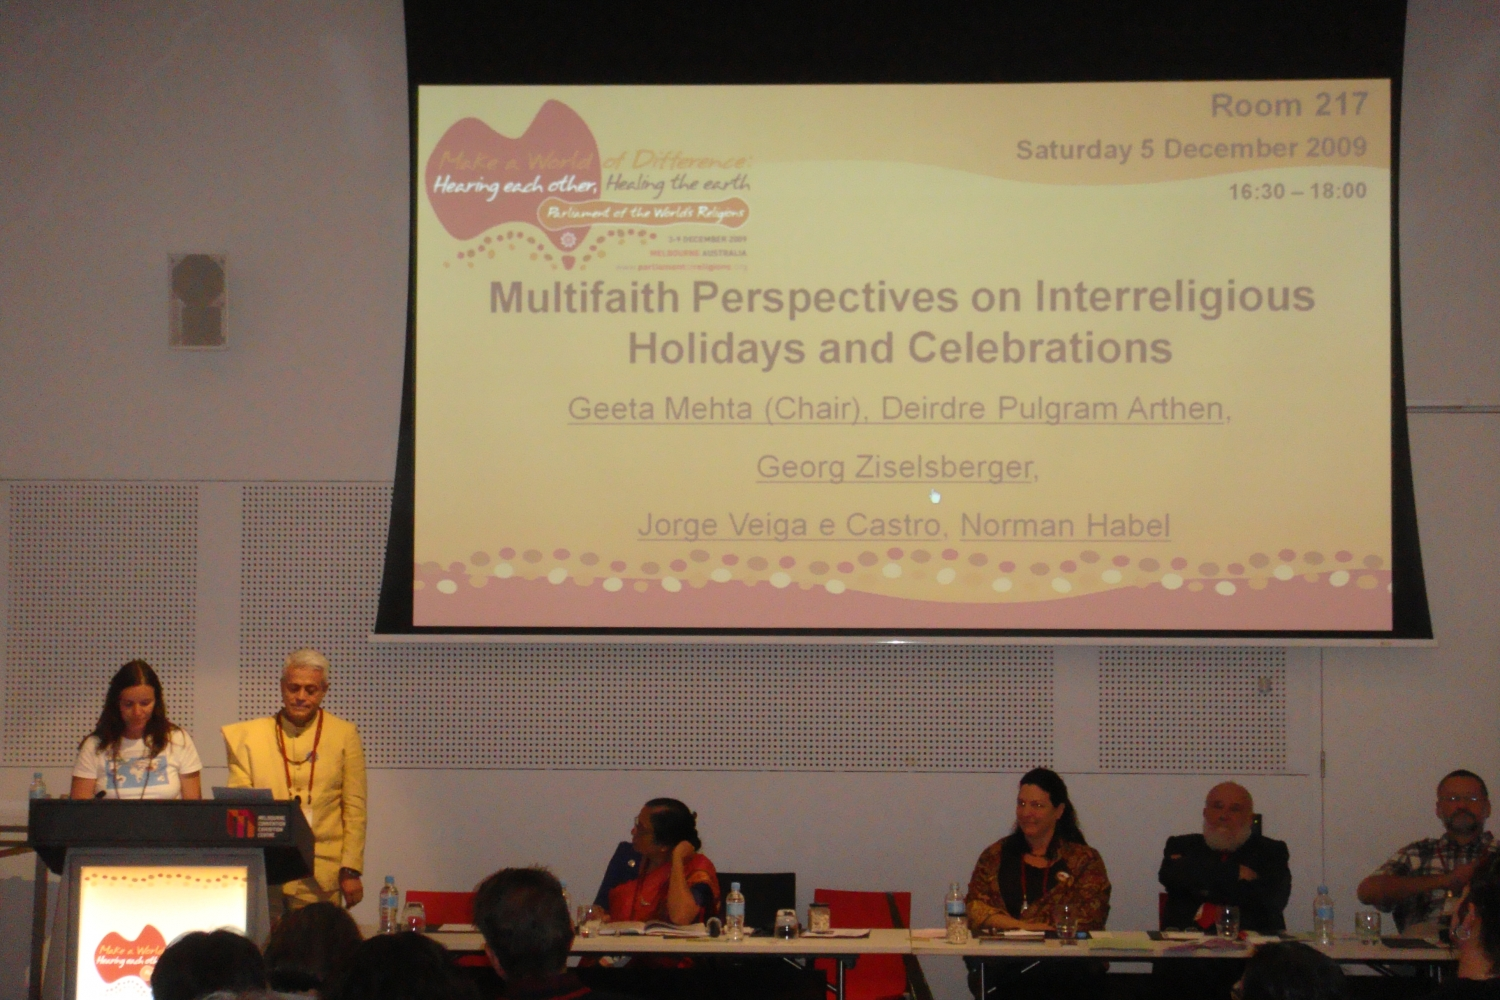 Conferência do Guru Jí durante a sessão 'Multifaith Perspectives on Interreligious Holidays and Celebrations'